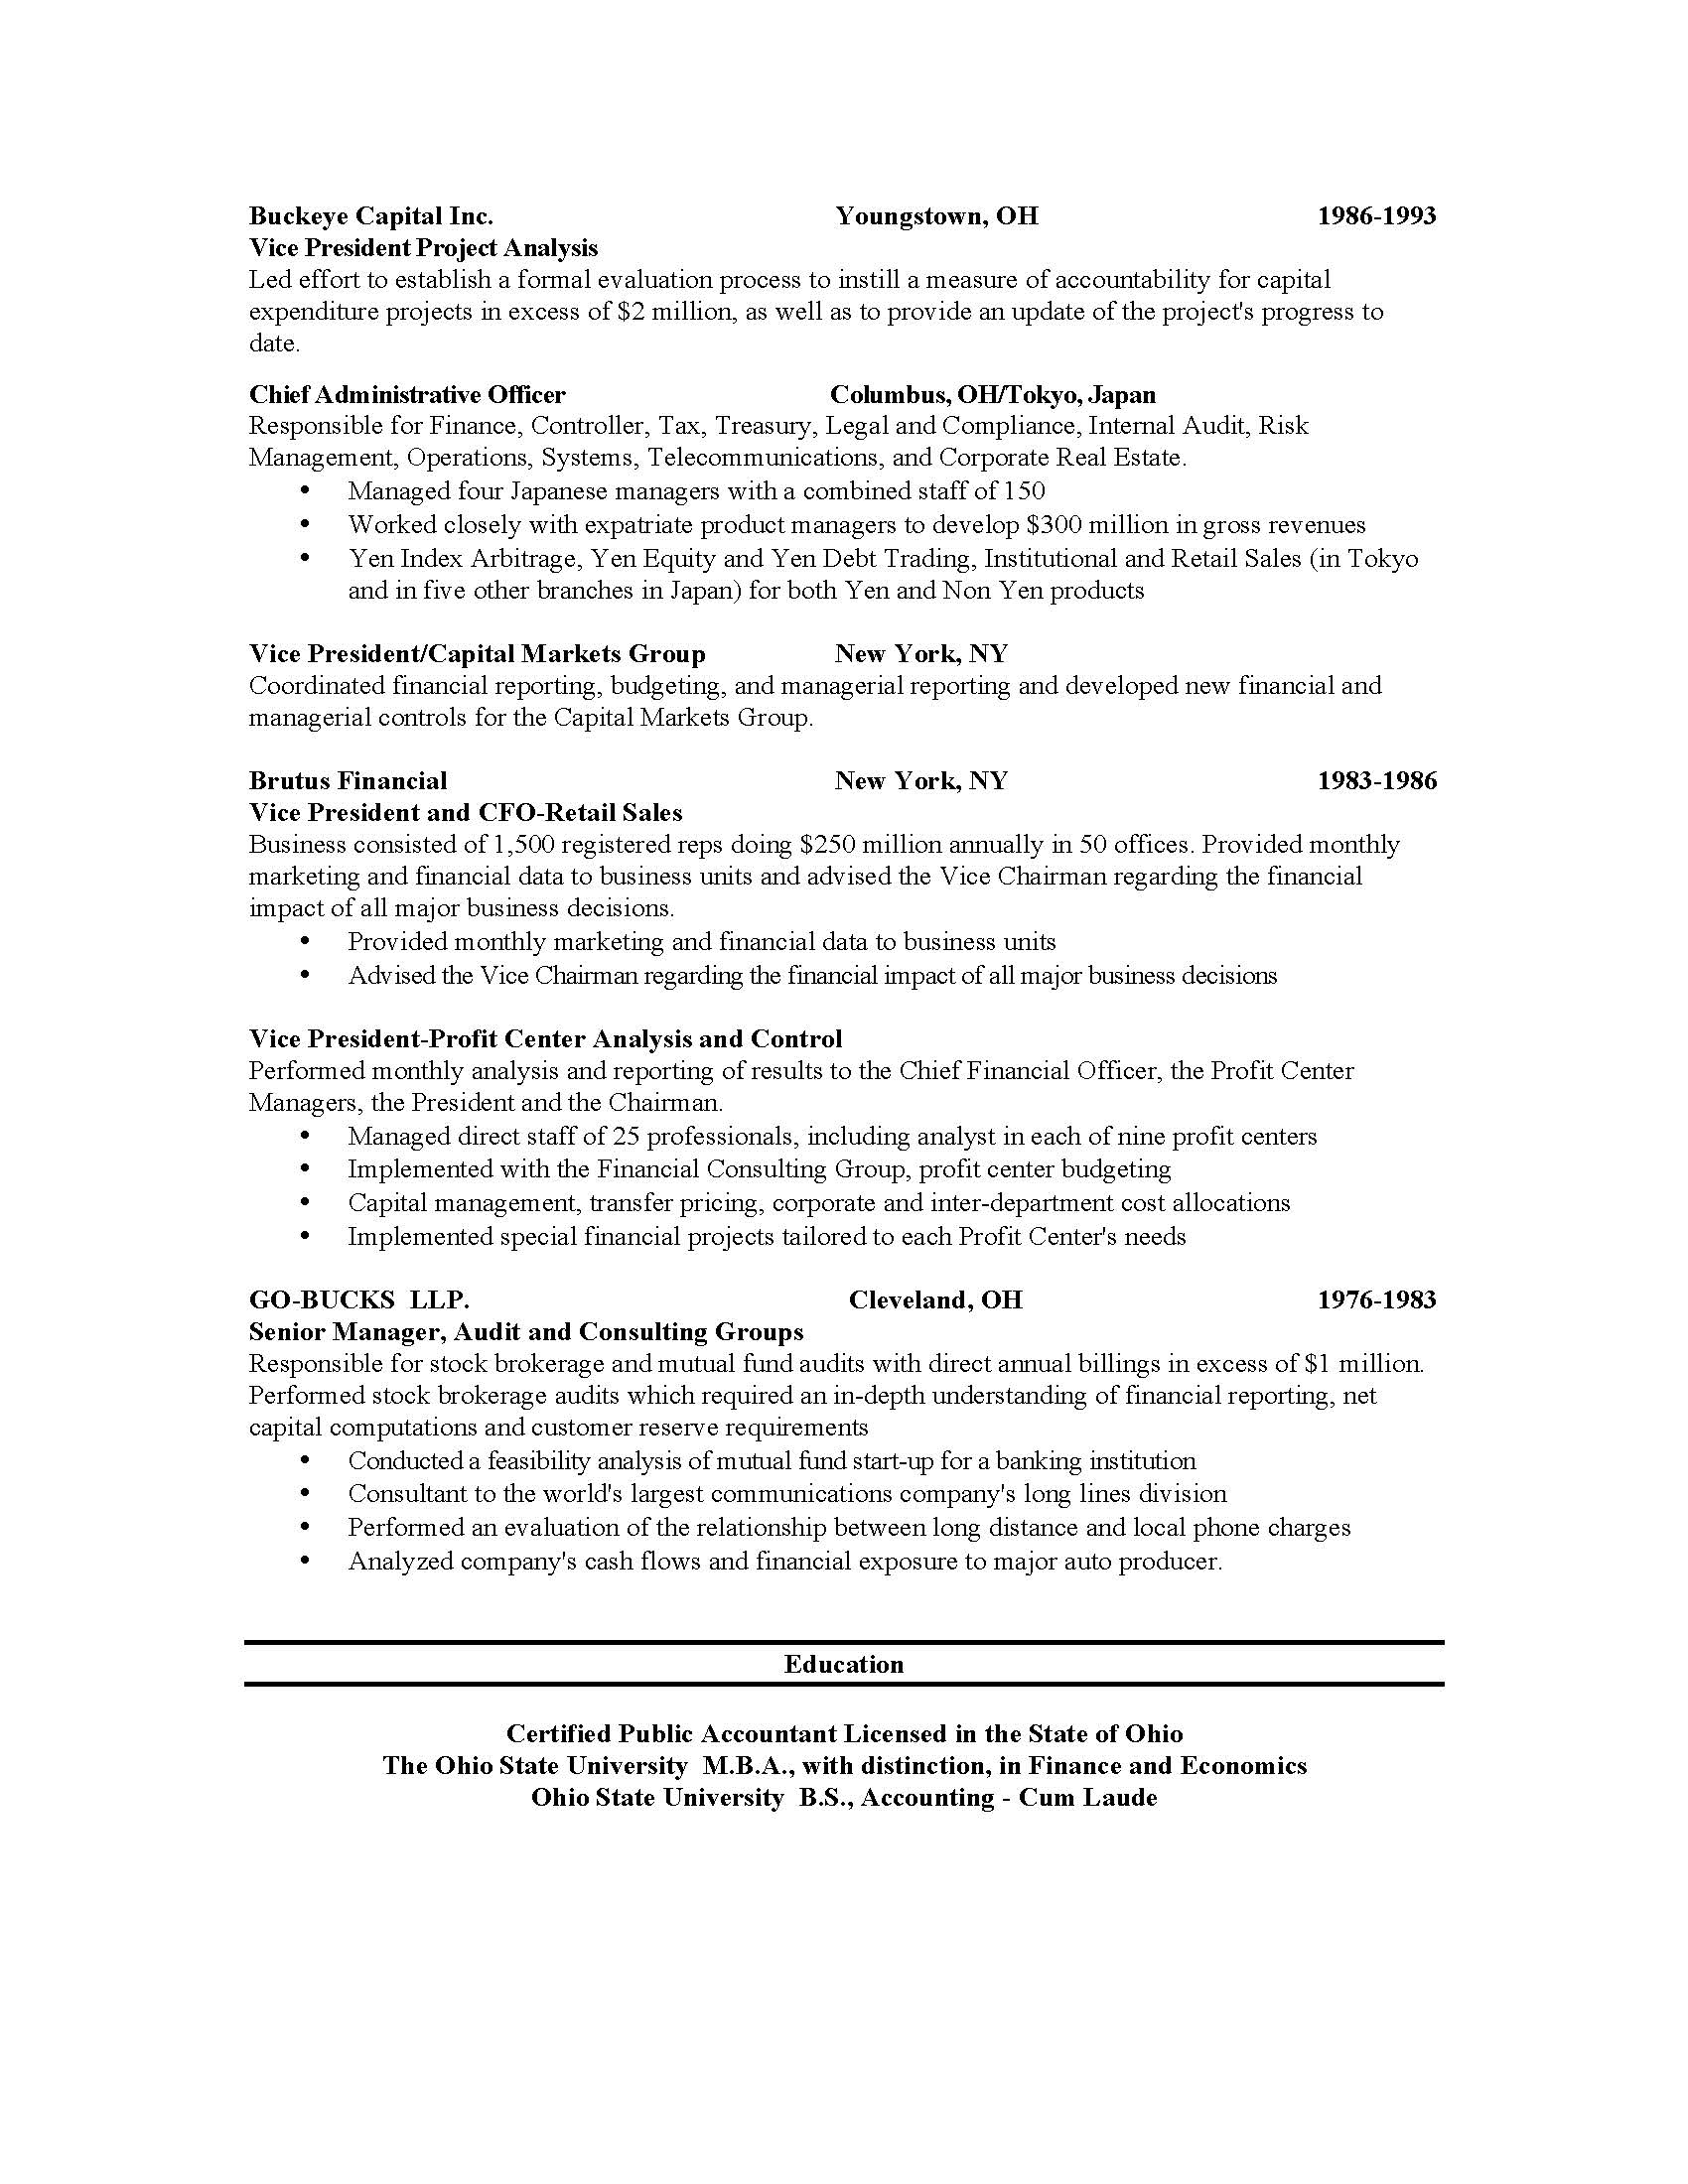 chronological resume chronological resume2 - How To Make A Cover Letter For A Resume